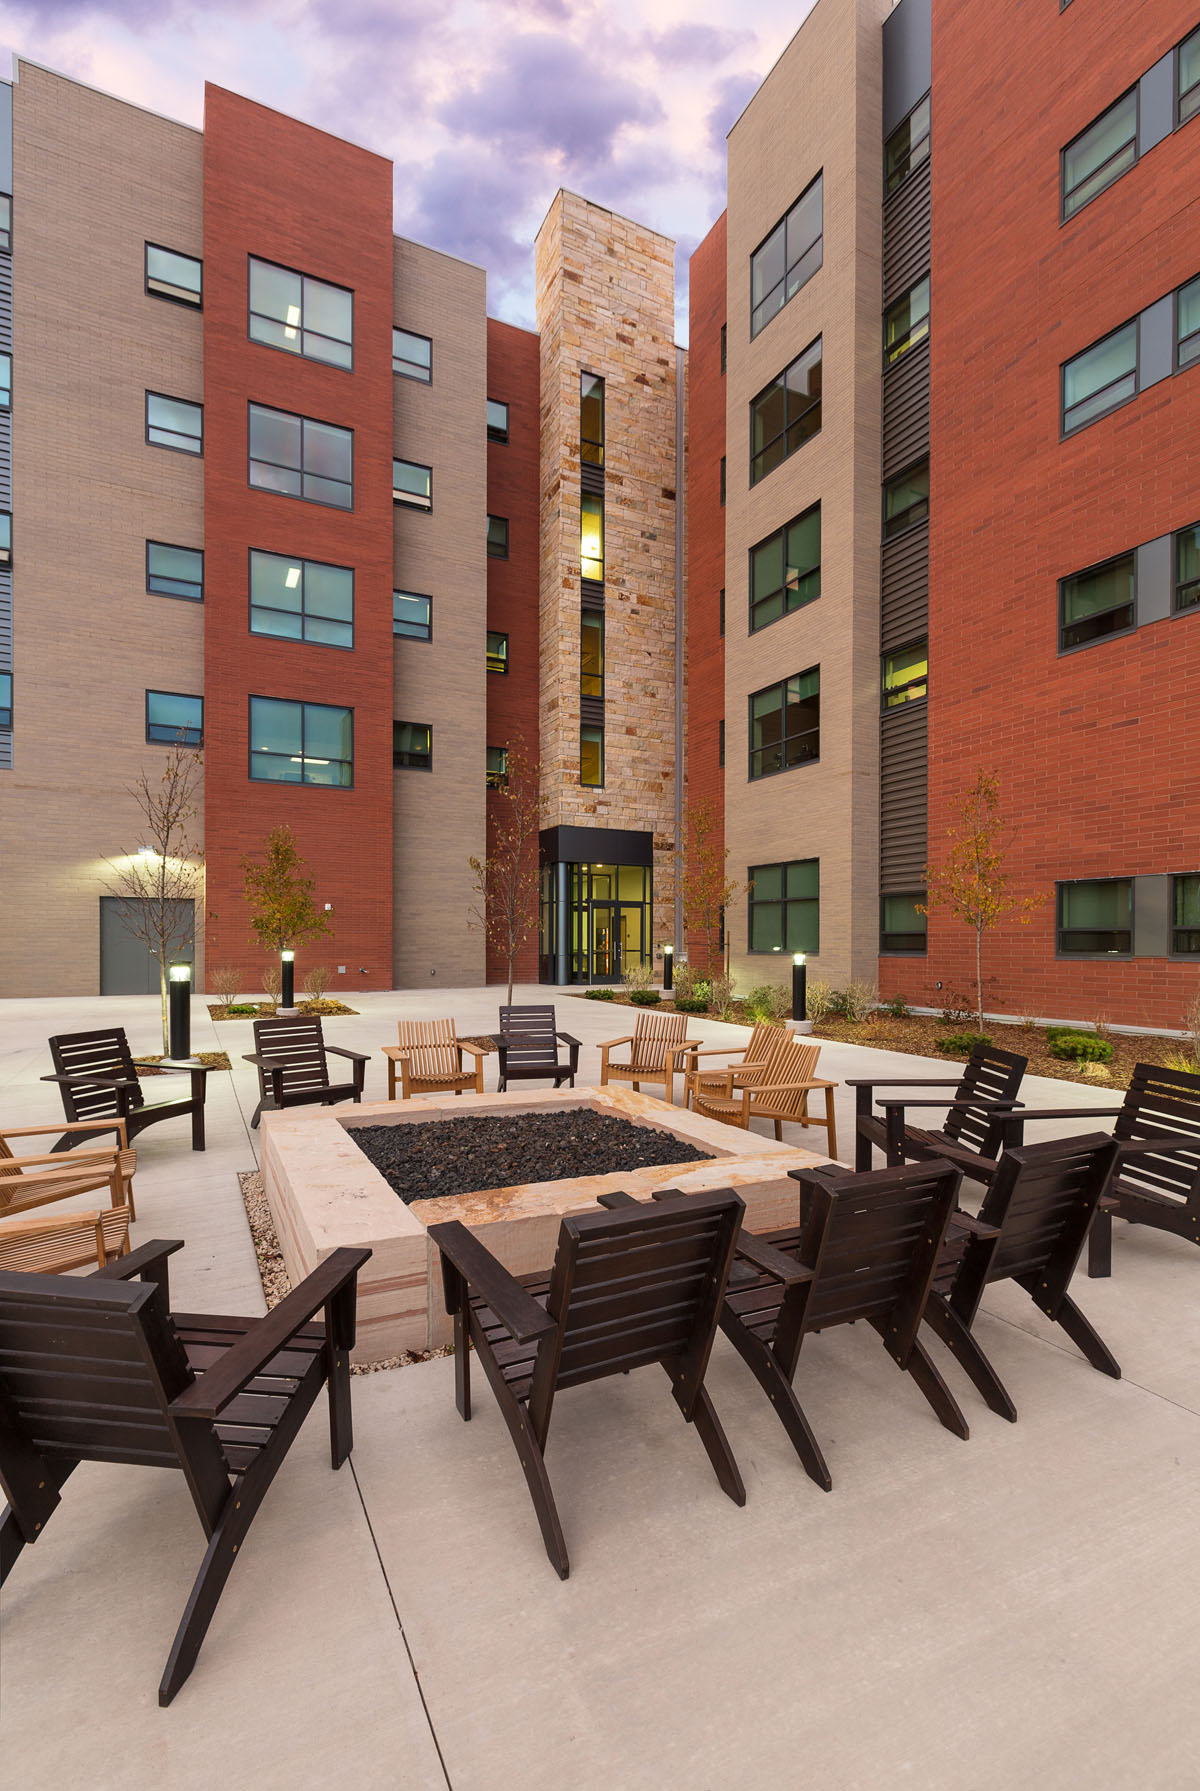 Large, square fire pit with dark and light wood chairs surrounding at the back of the honors student housing building.